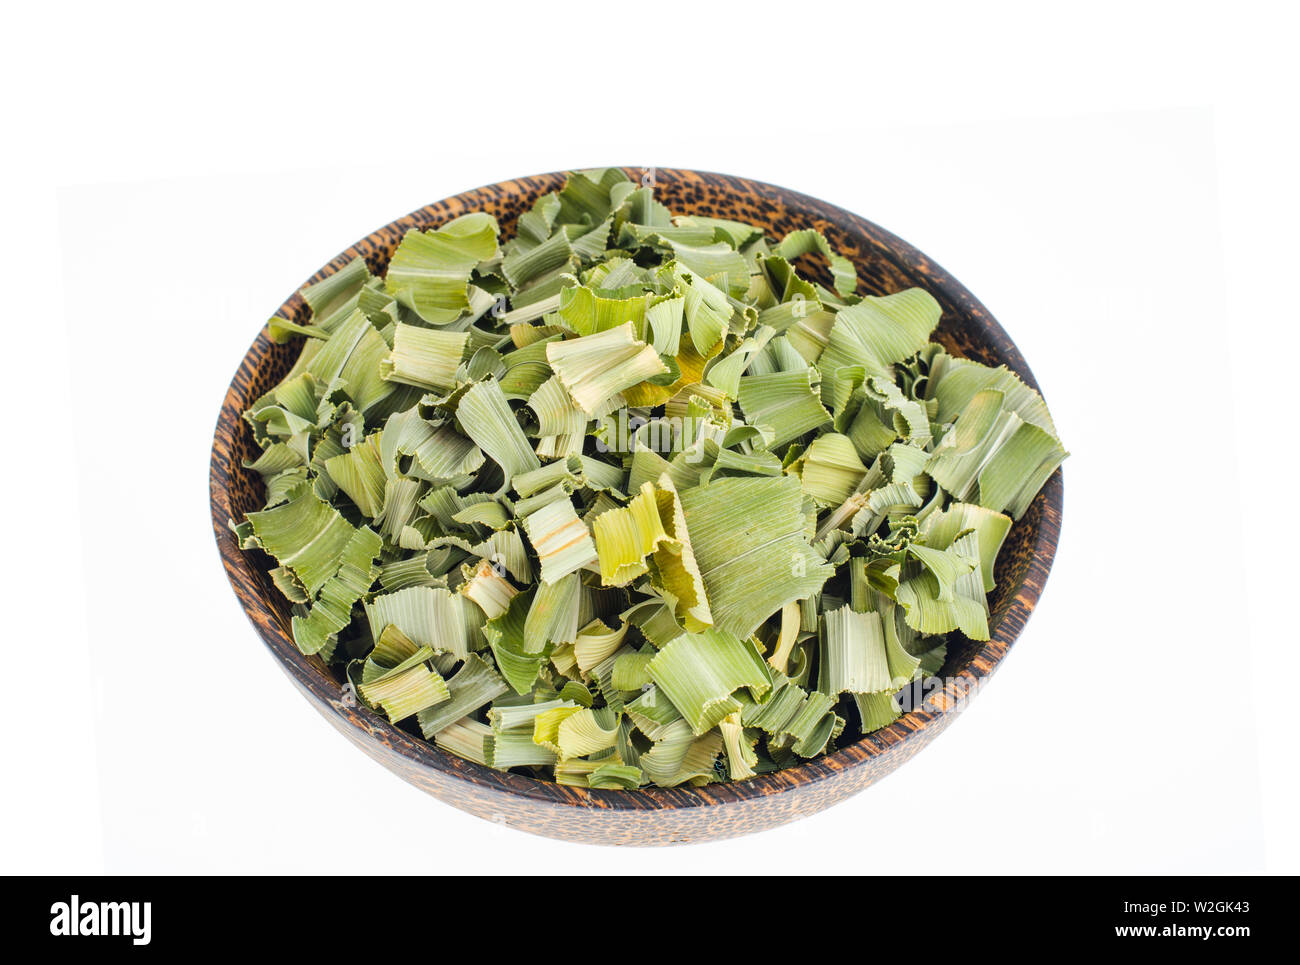 Dried pandan leaves in wooden bowl.  - Stock Image